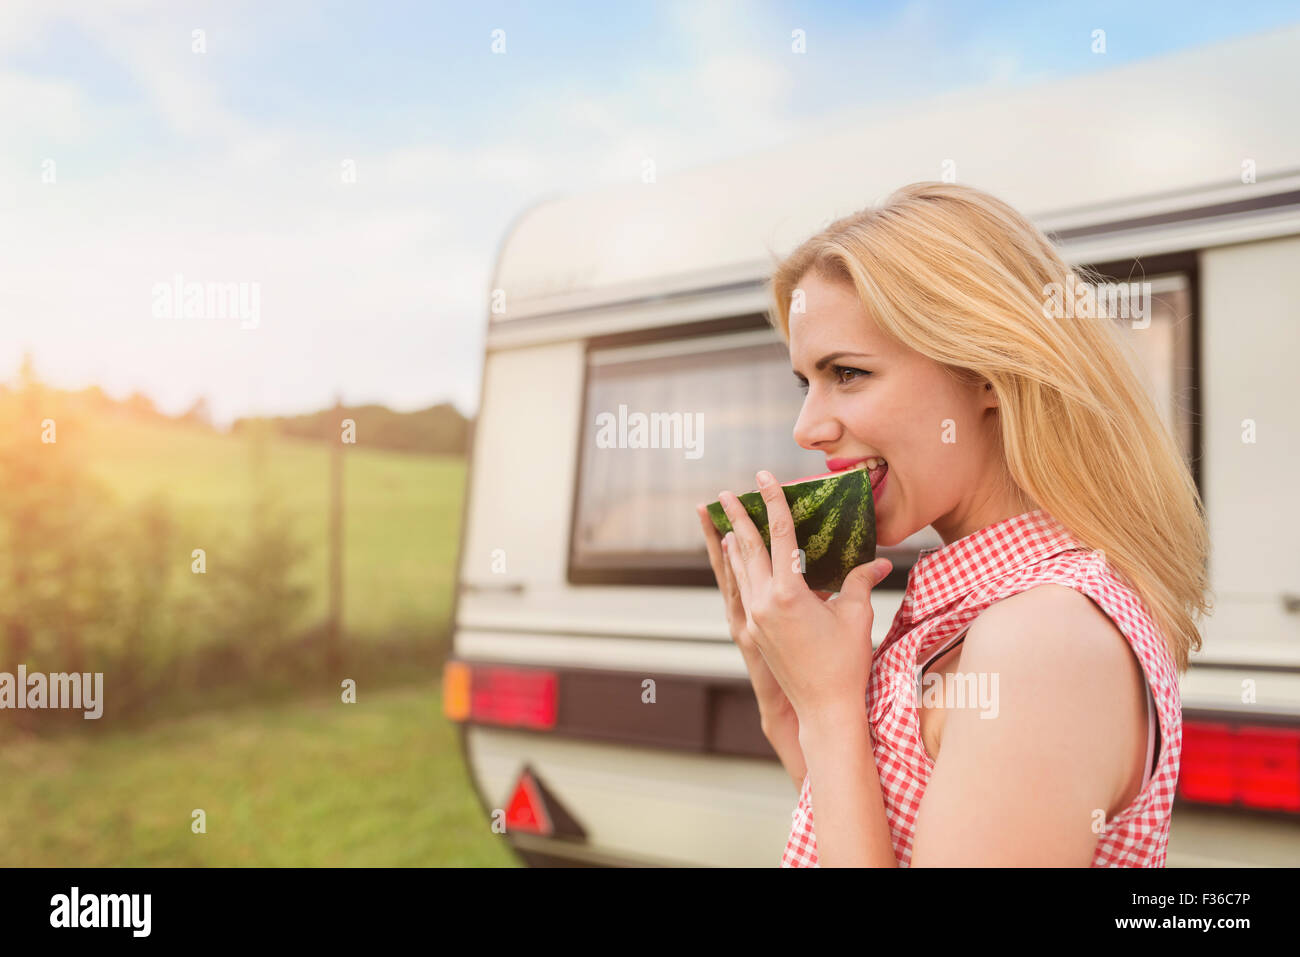 Beautiful woman outside the camper van - Stock Image